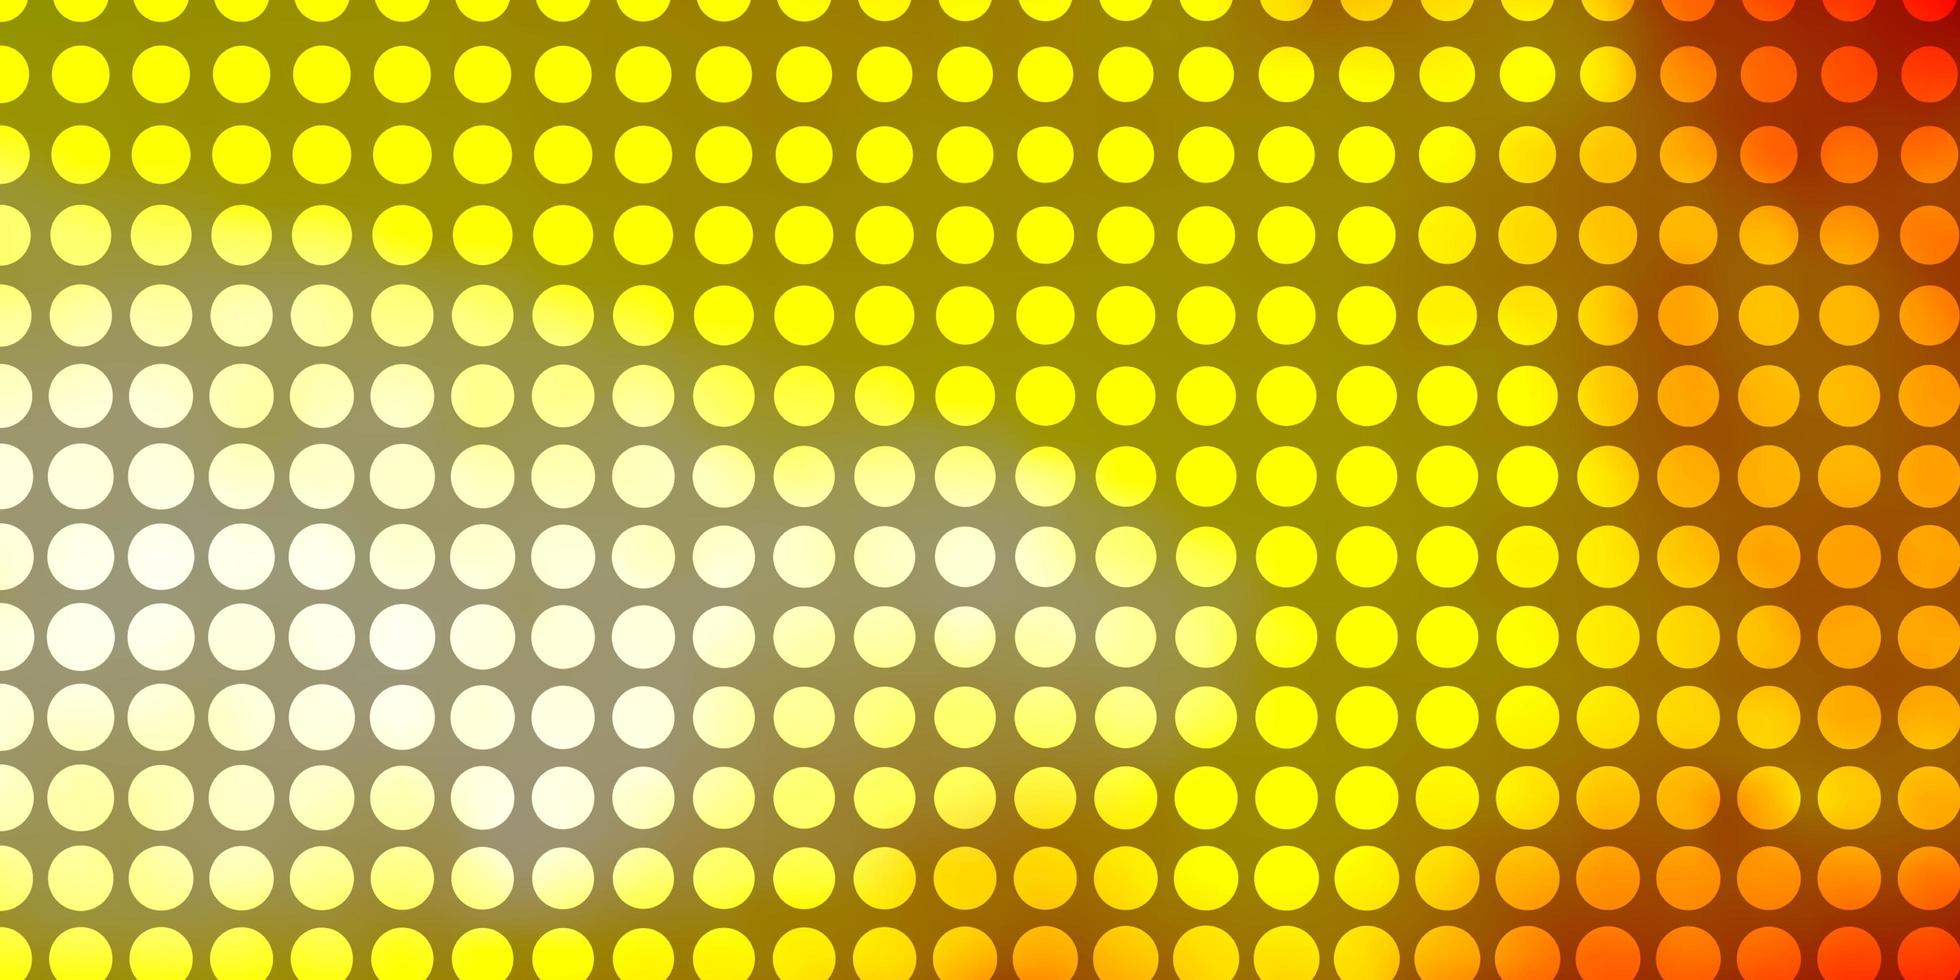 Yellow and red background with circles. vector